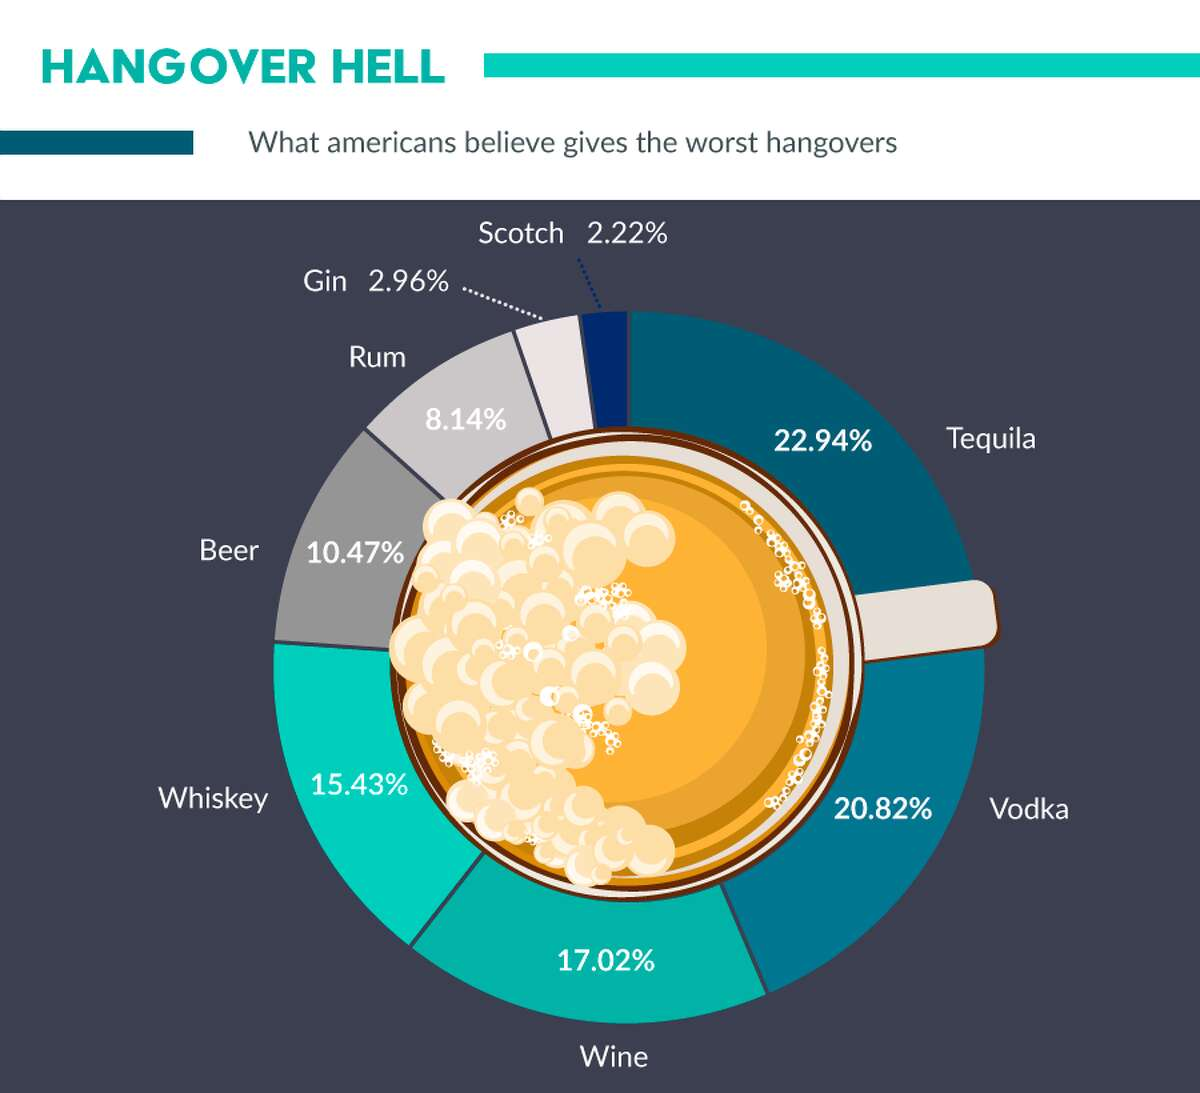 According to those who responded, tequila is overwhelming blamed for the worst hangovers (22.94 percent), followed by vodka (20.82 percent), and wine (17.02 percent). Whiskey, beer, rum, gin, and scotch all came after.